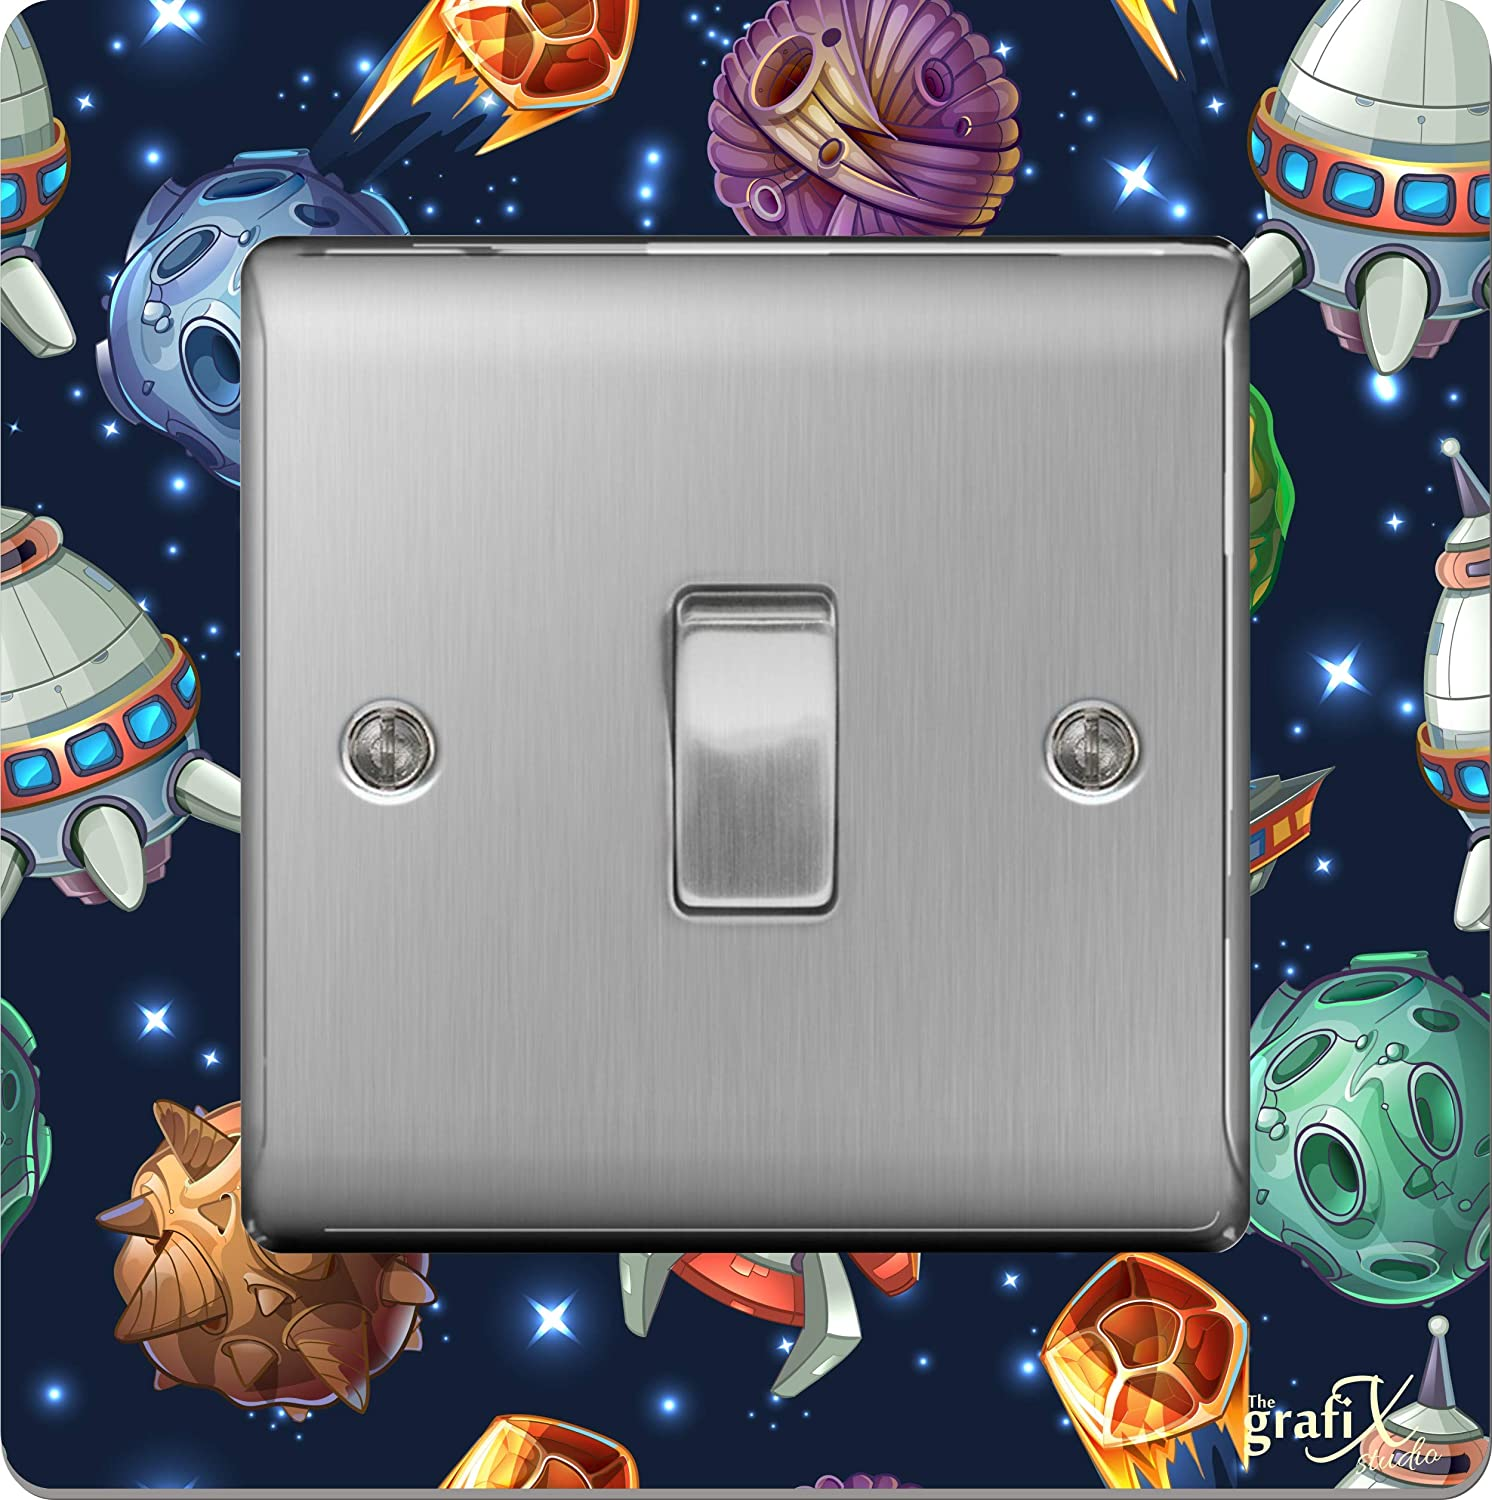 the sticker studio ltd Single Light Switch/Socket Surround Acrylic Finger Plate Space Planets Rockets sr10